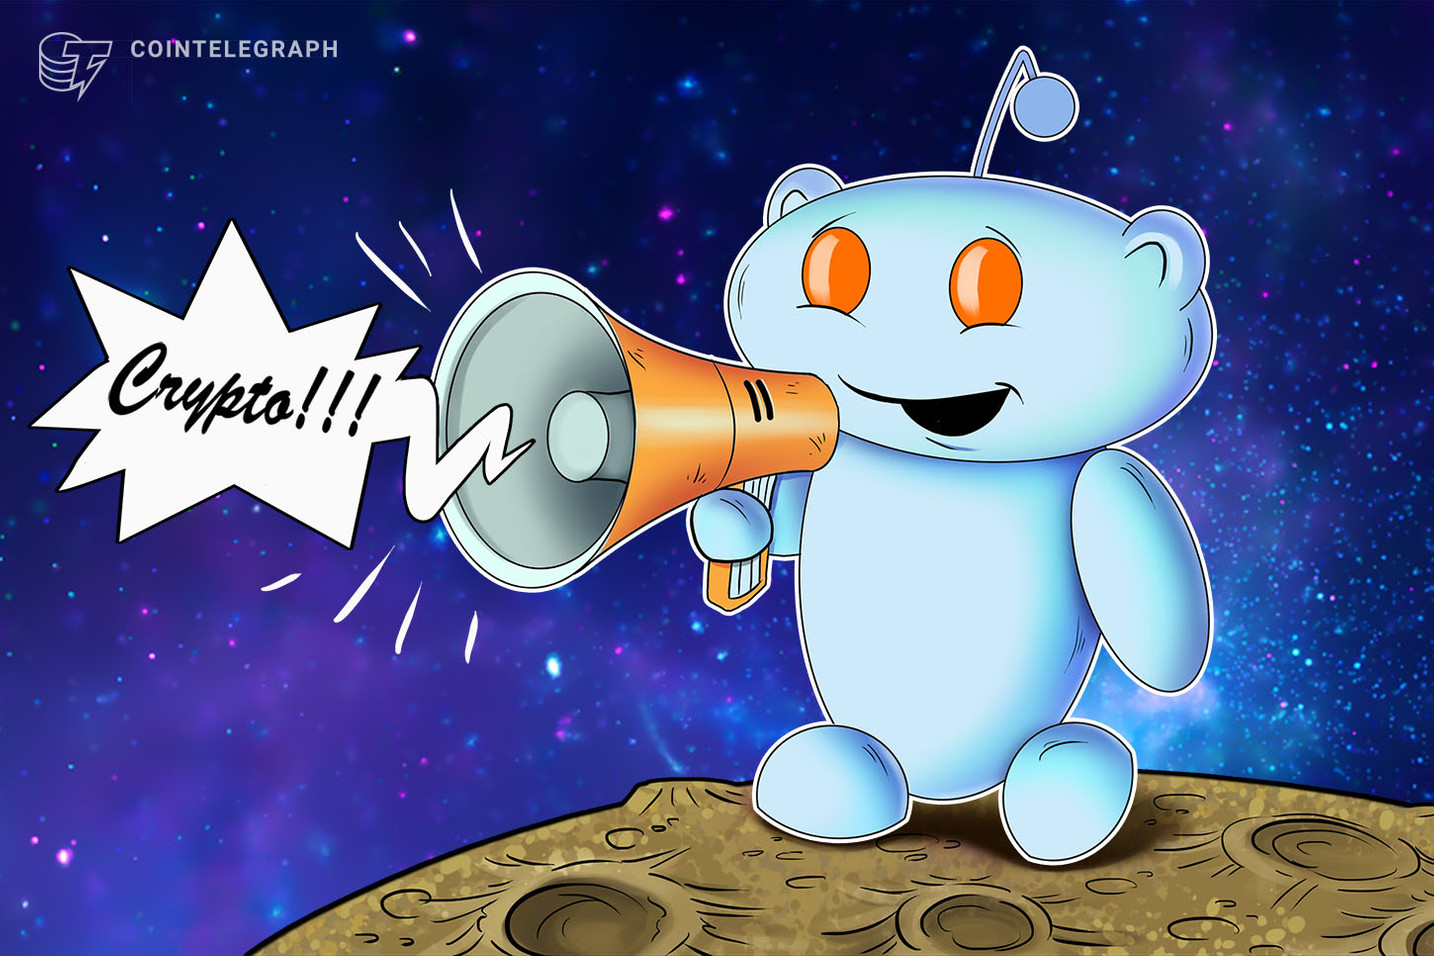 Research: Reddit Crypto-Related Discussion Volume Strongly Correlated to Price